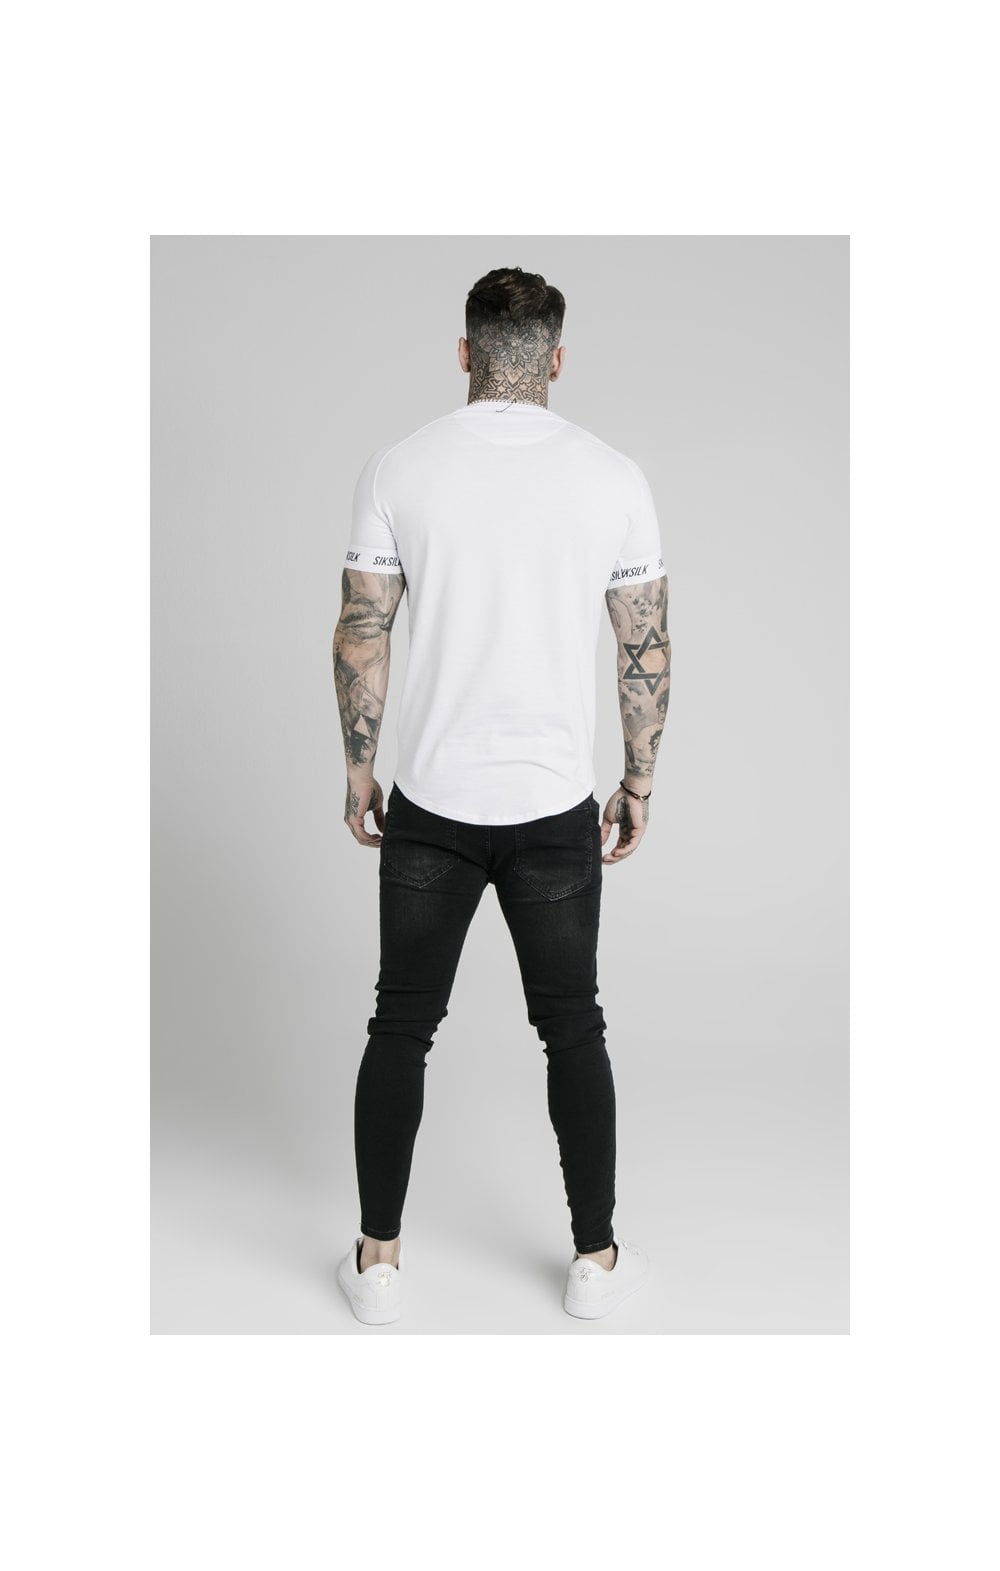 Load image into Gallery viewer, SikSilk S/S Raglan Tech Tee - White (5)